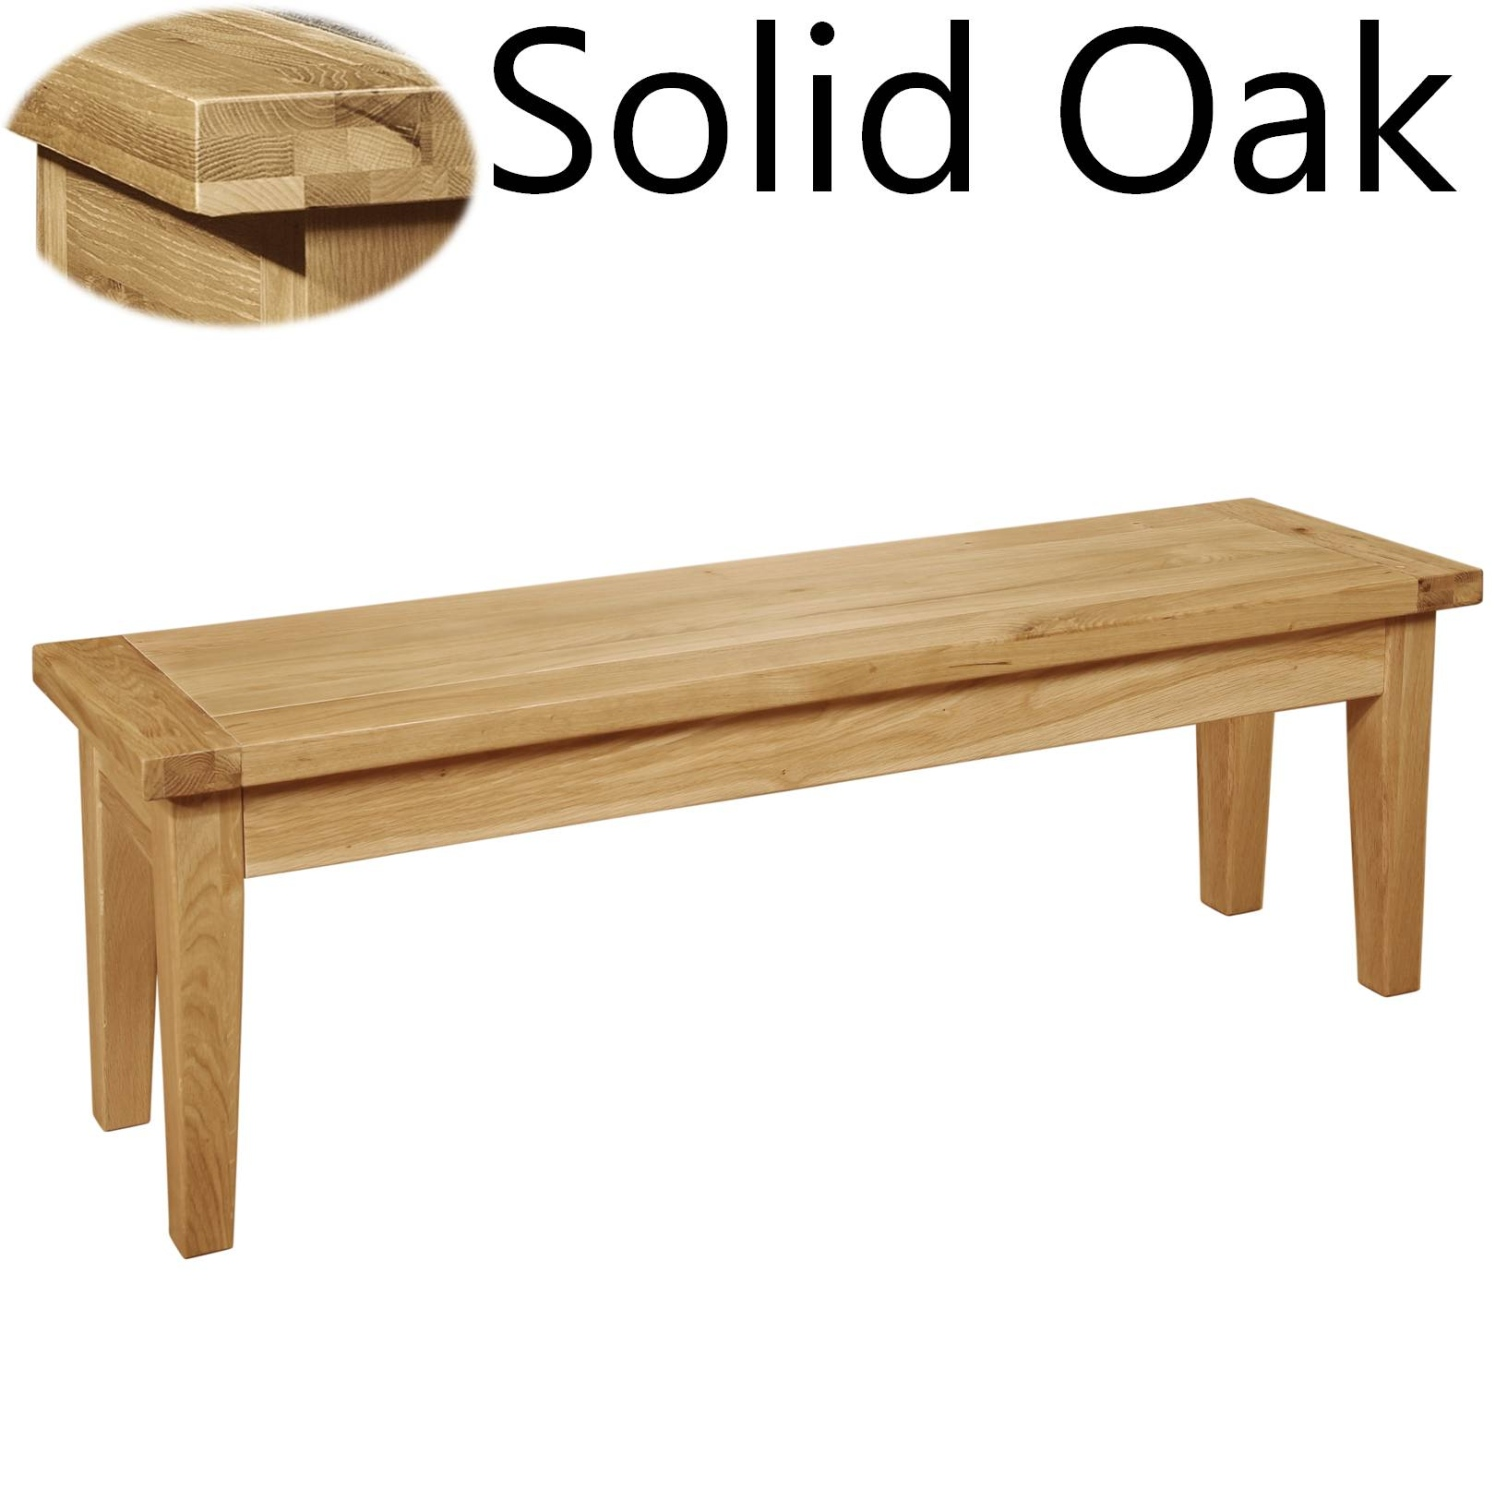 Panama Solid Oak Furniture Dining Room Bench EBay. Full resolution  image, nominally Width 1500 Height 1500 pixels, image with #6E3E1F.